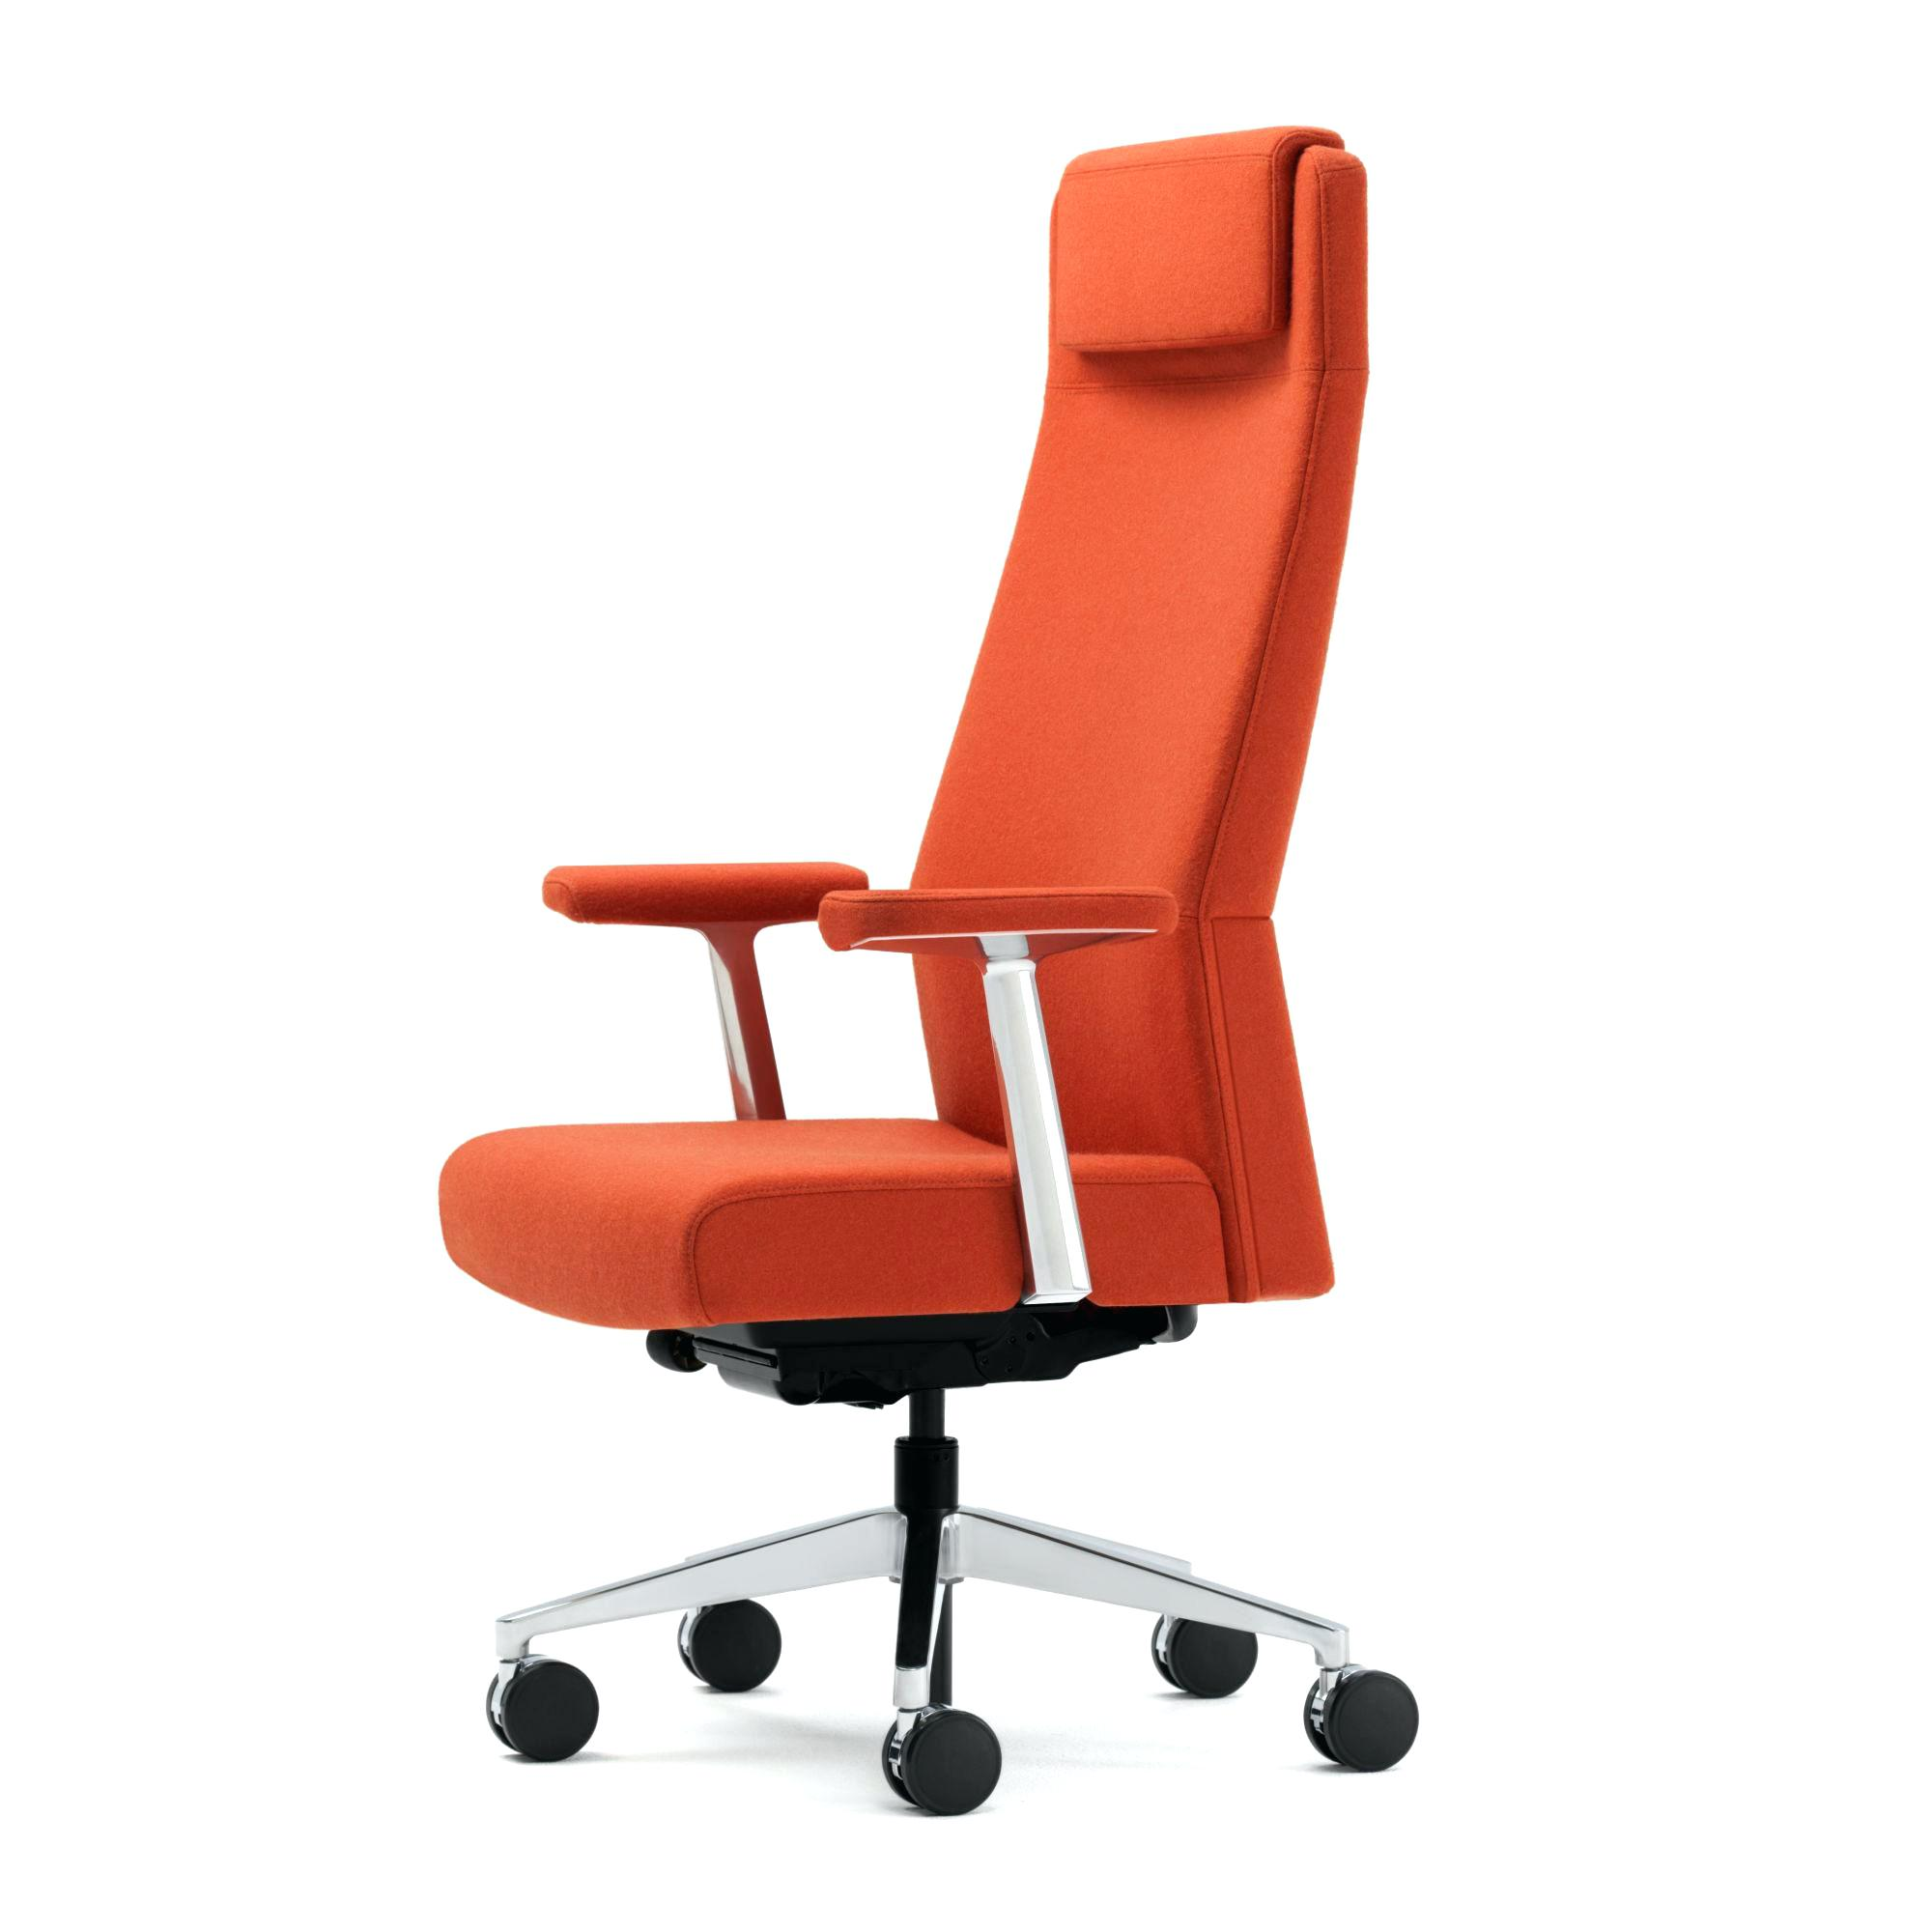 Desk Chair Staples Staples Gaming Chair Top Blog For Chair Review